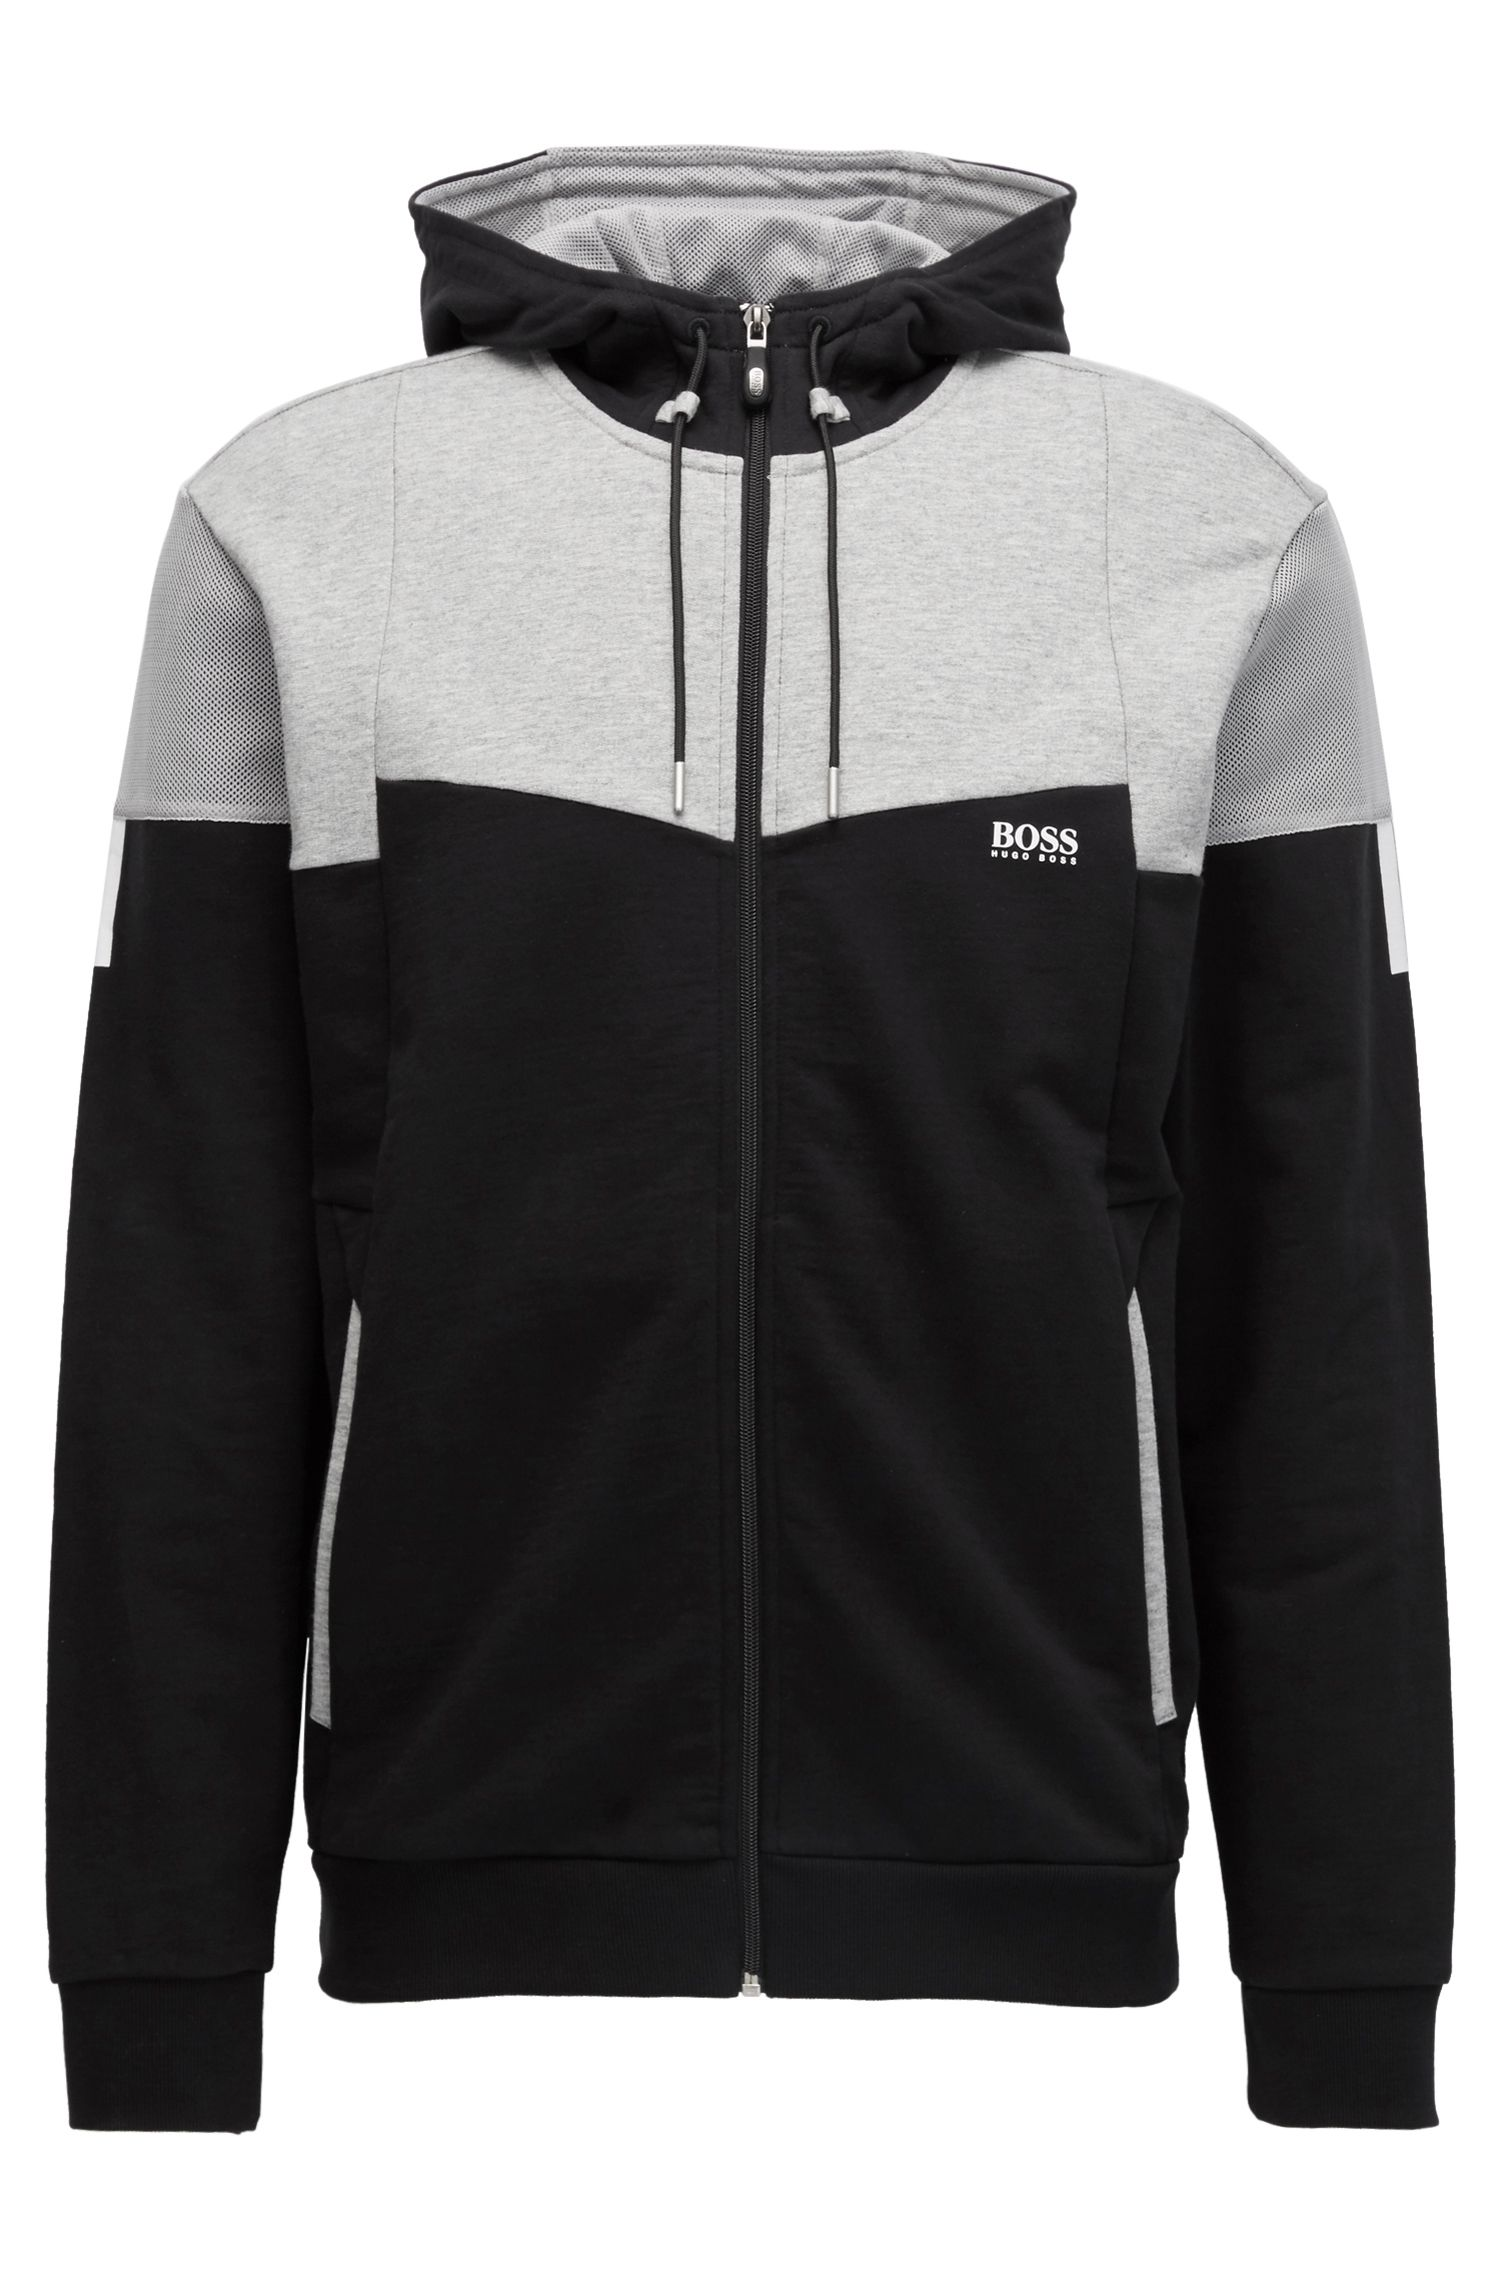 Cotton Full-Zip Hoodie | Saggy